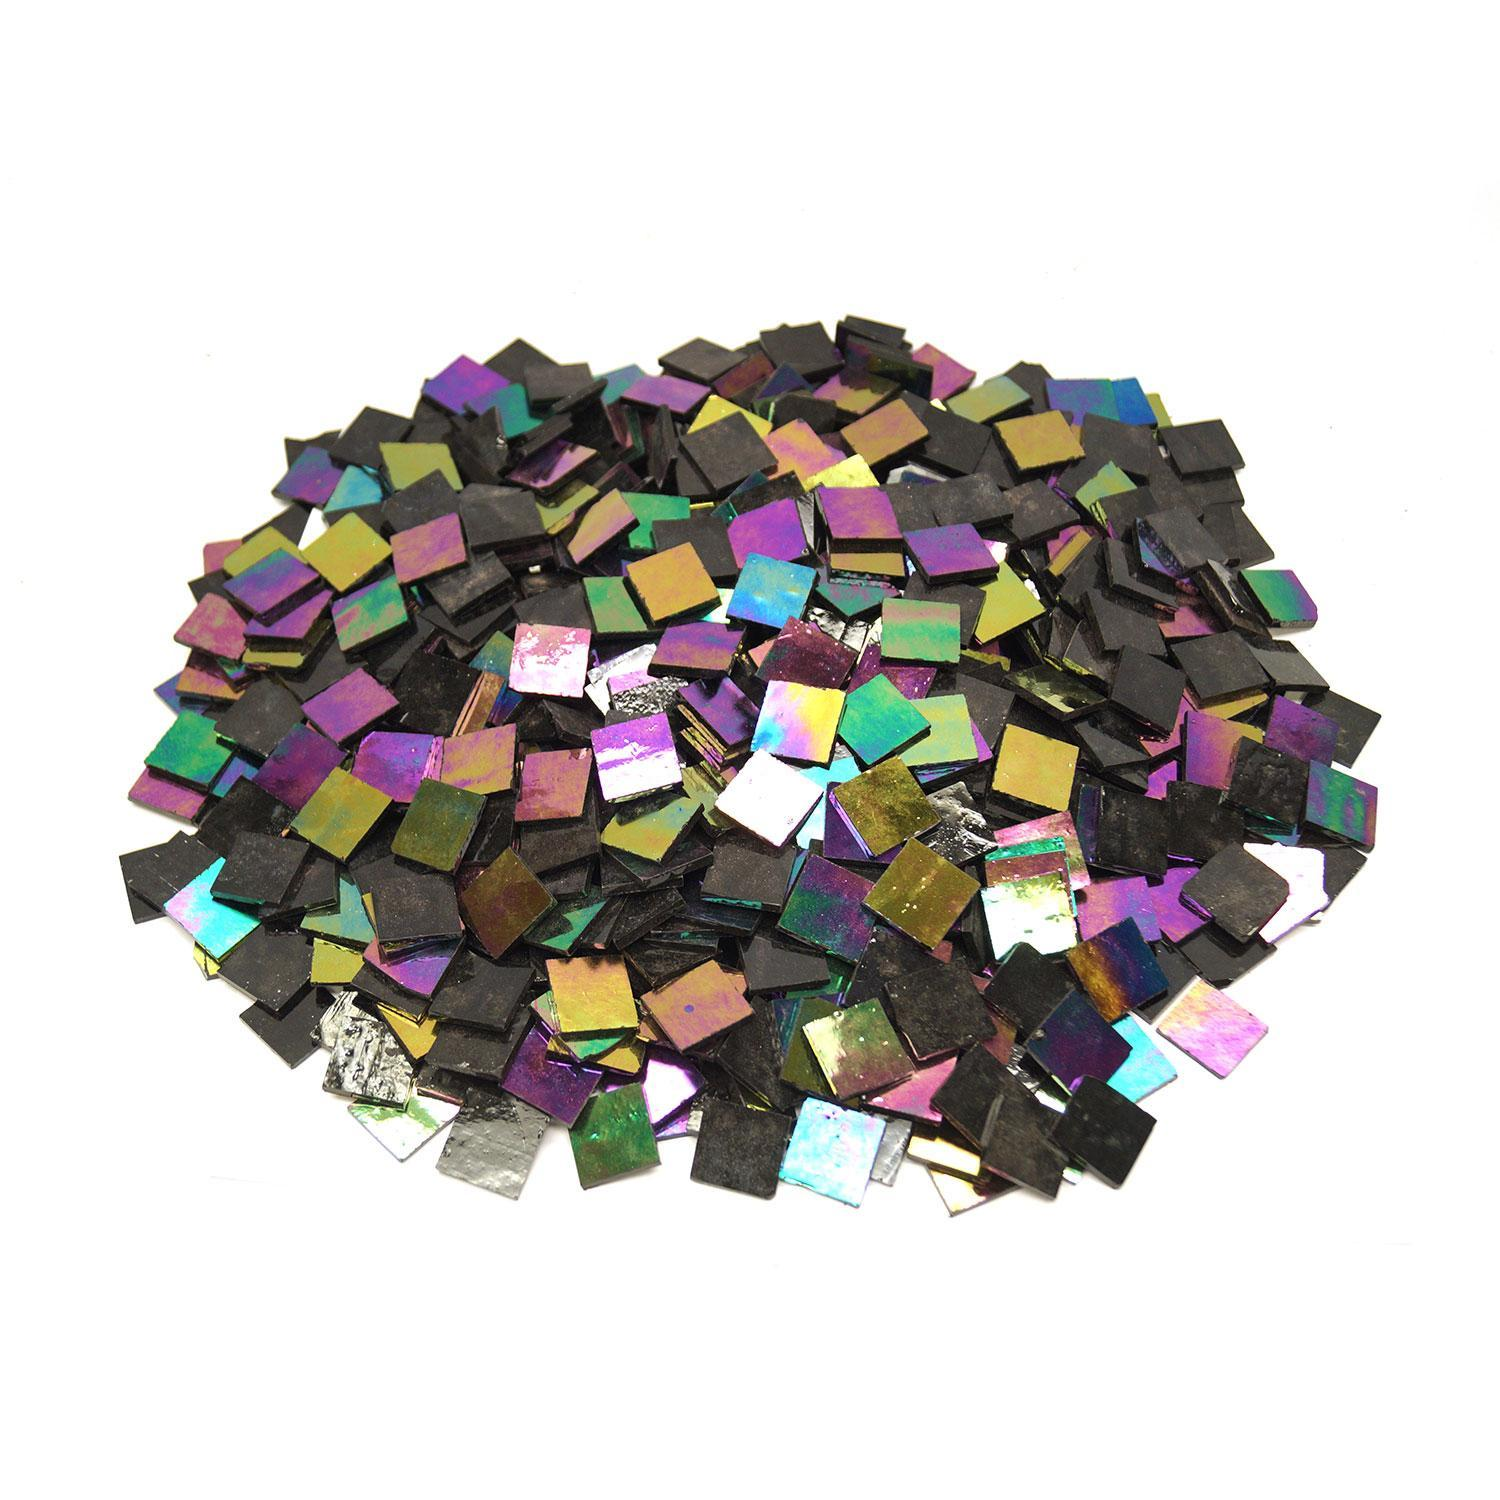 3/4 Black Opaque Iridized Stained Glass Chips - 640 Pieces